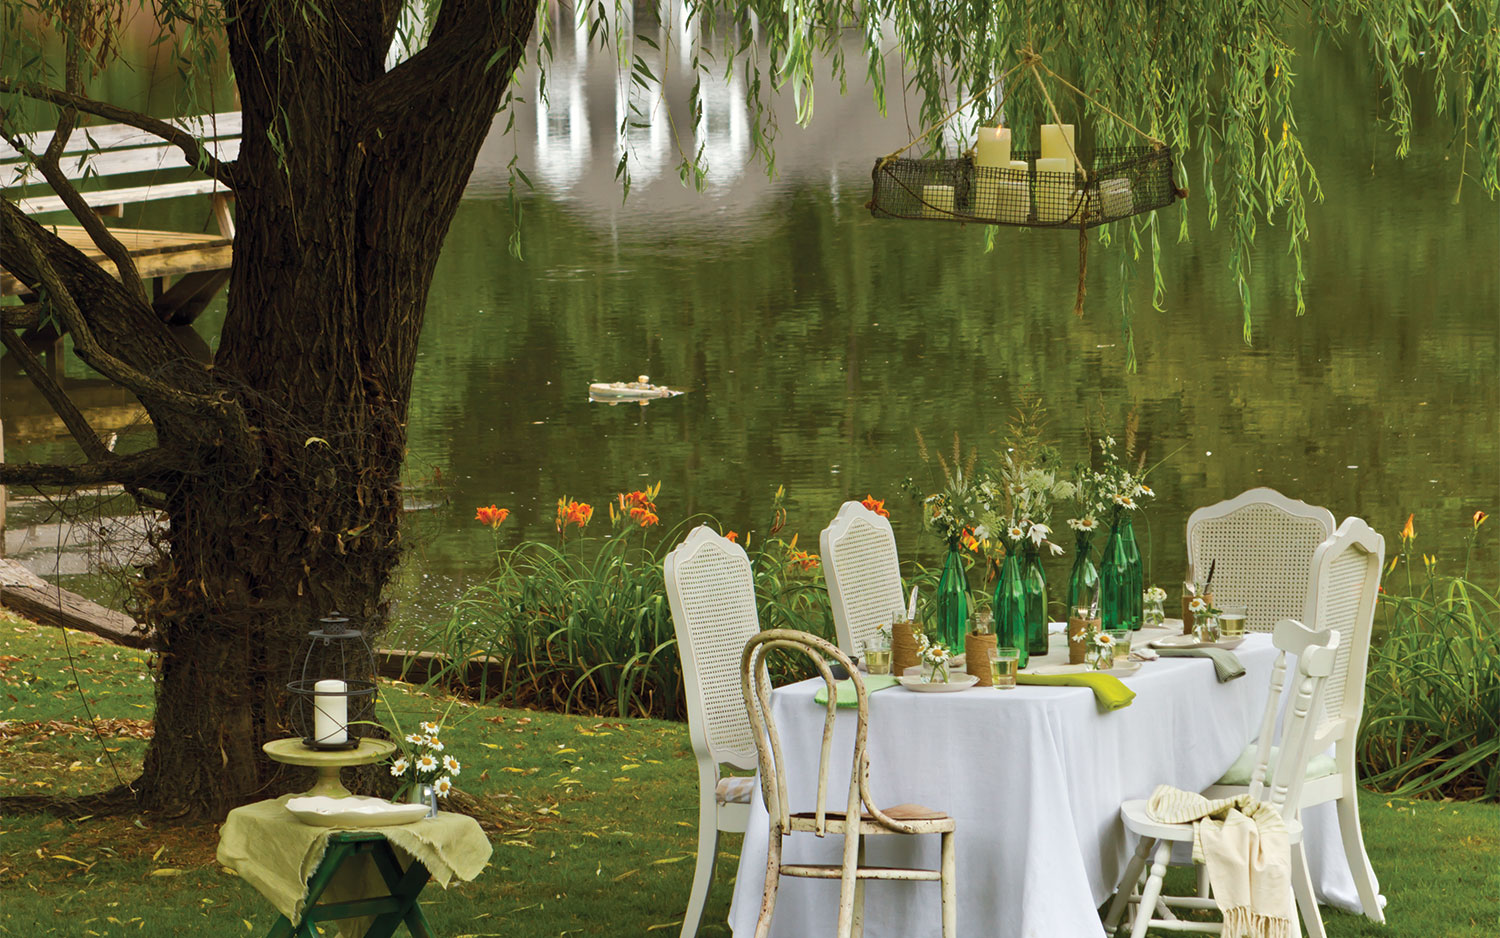 A picture for summer lights for outdoor dining with fishing basket holding candles